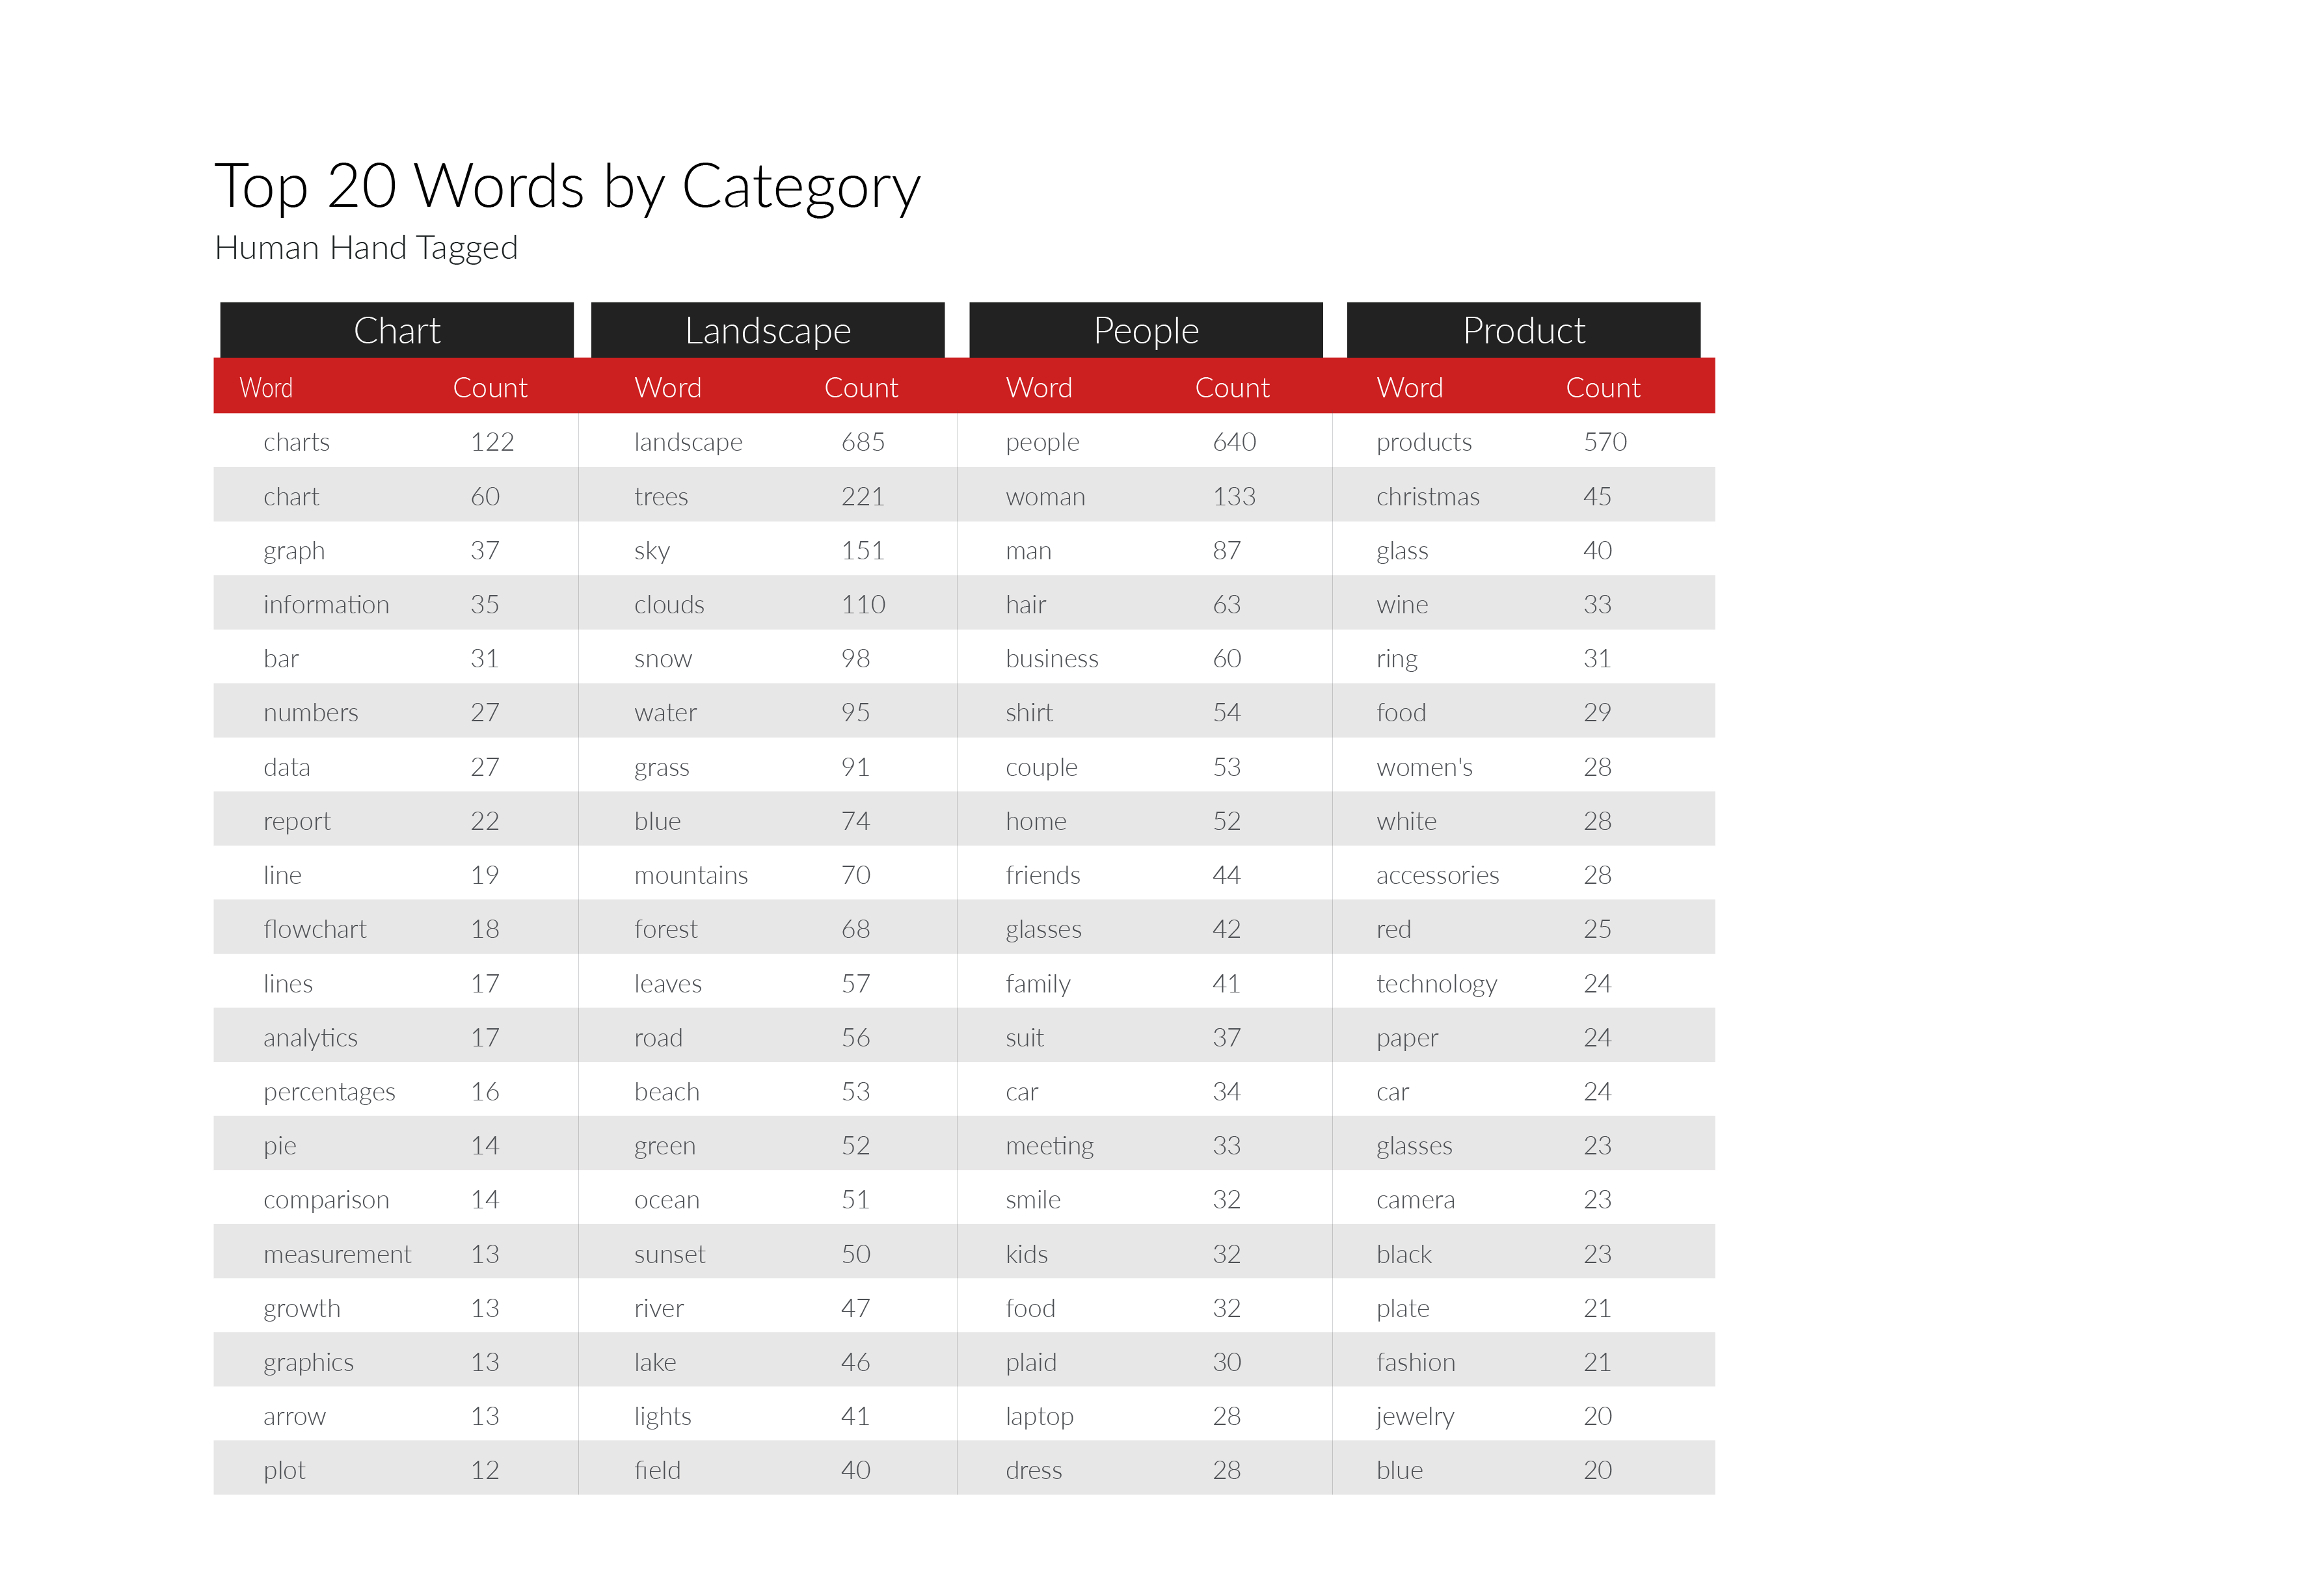 Top 20 keywords testers gave to images in the study by image category